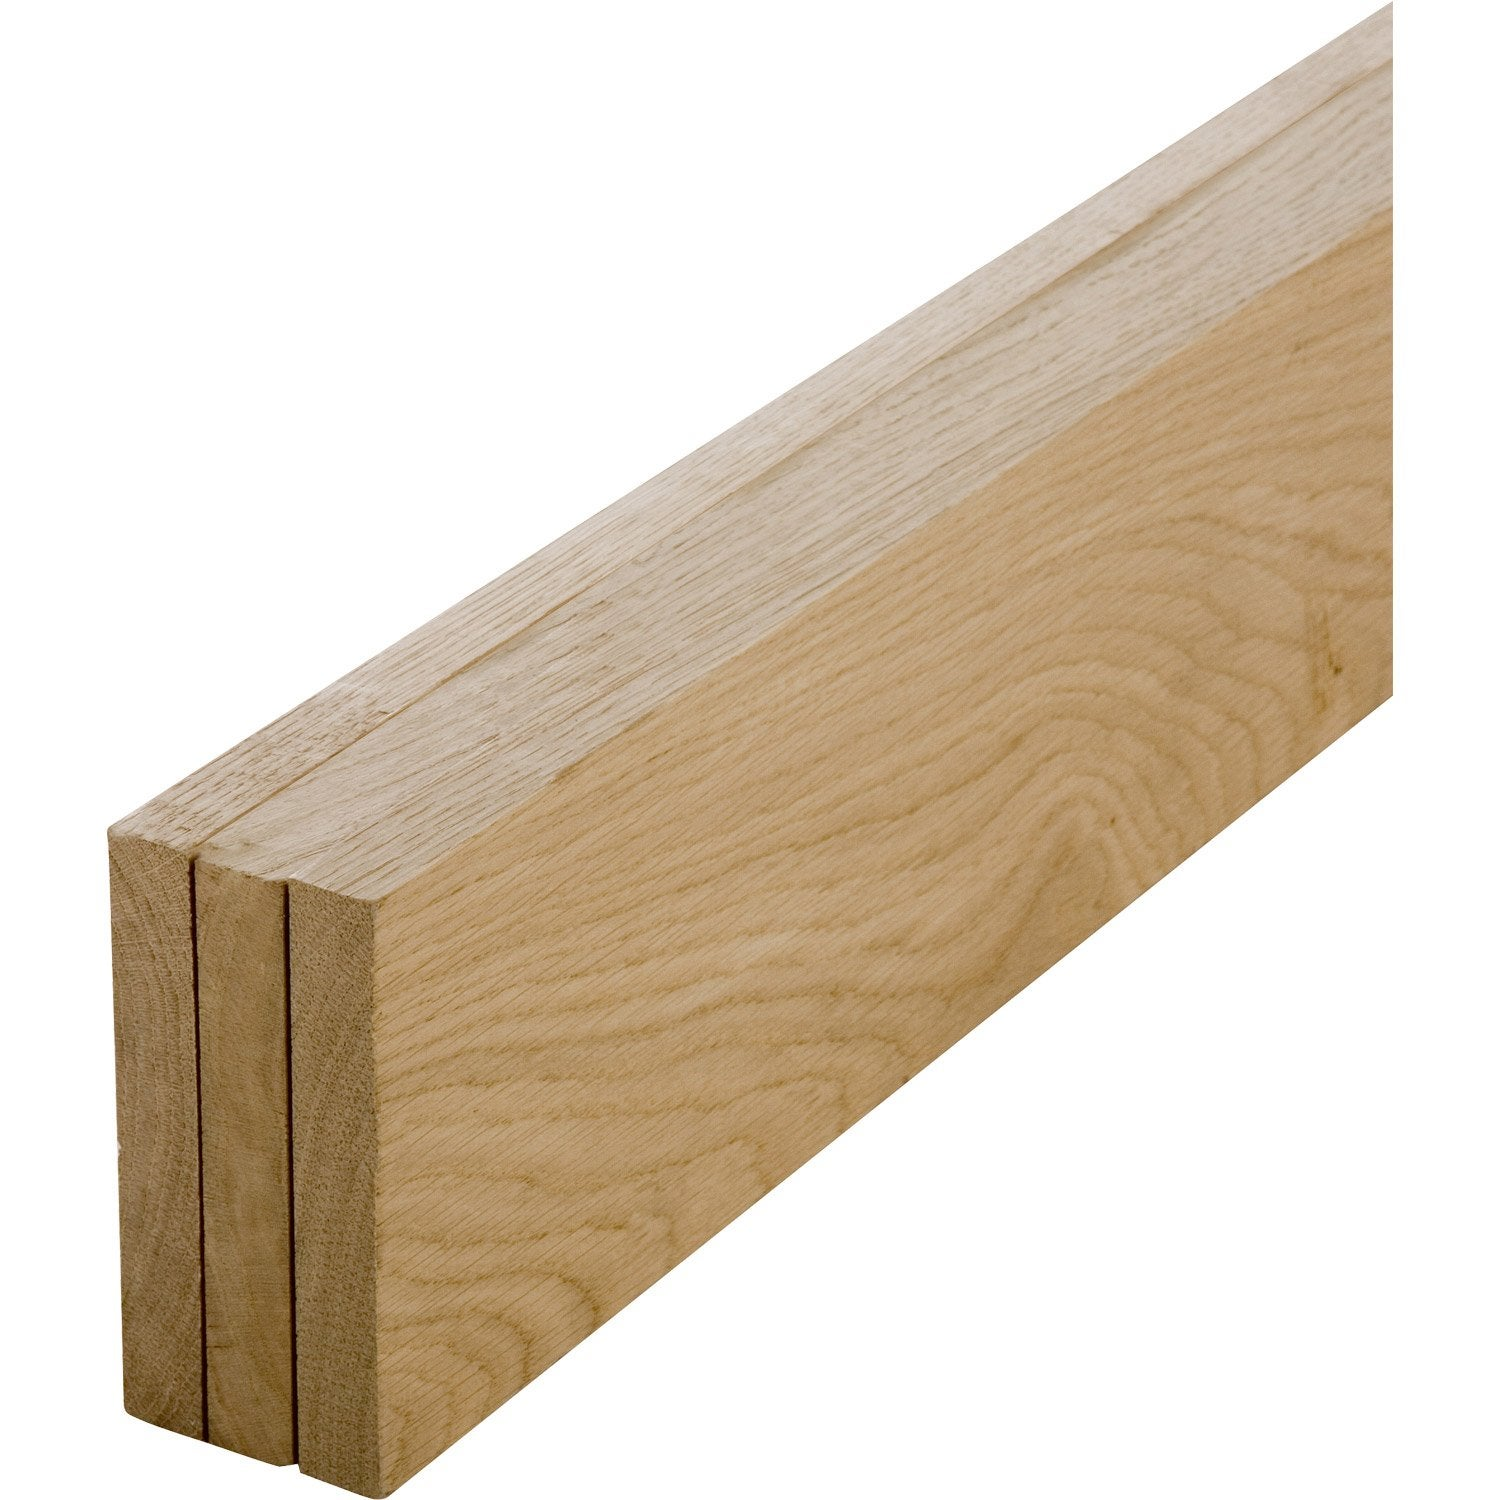 Lot de 3 planches ch ne petits noeuds rabot 20 x 140 mm l 1 8 m leroy merlin - Tablette chene leroy merlin ...